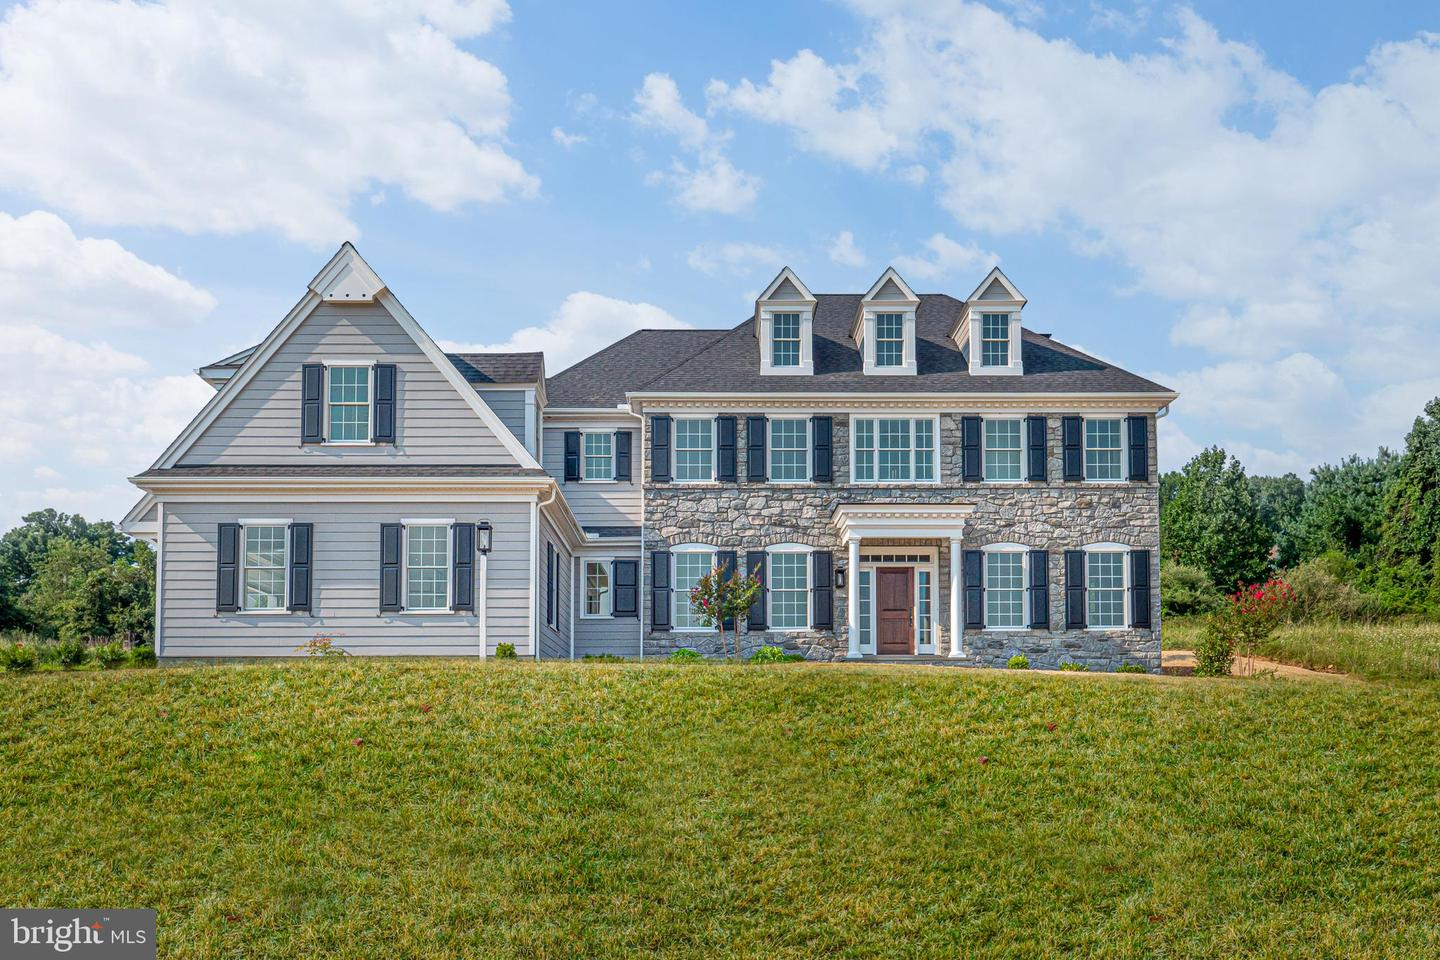 3104-B Darby Road Ardmore, PA 19003